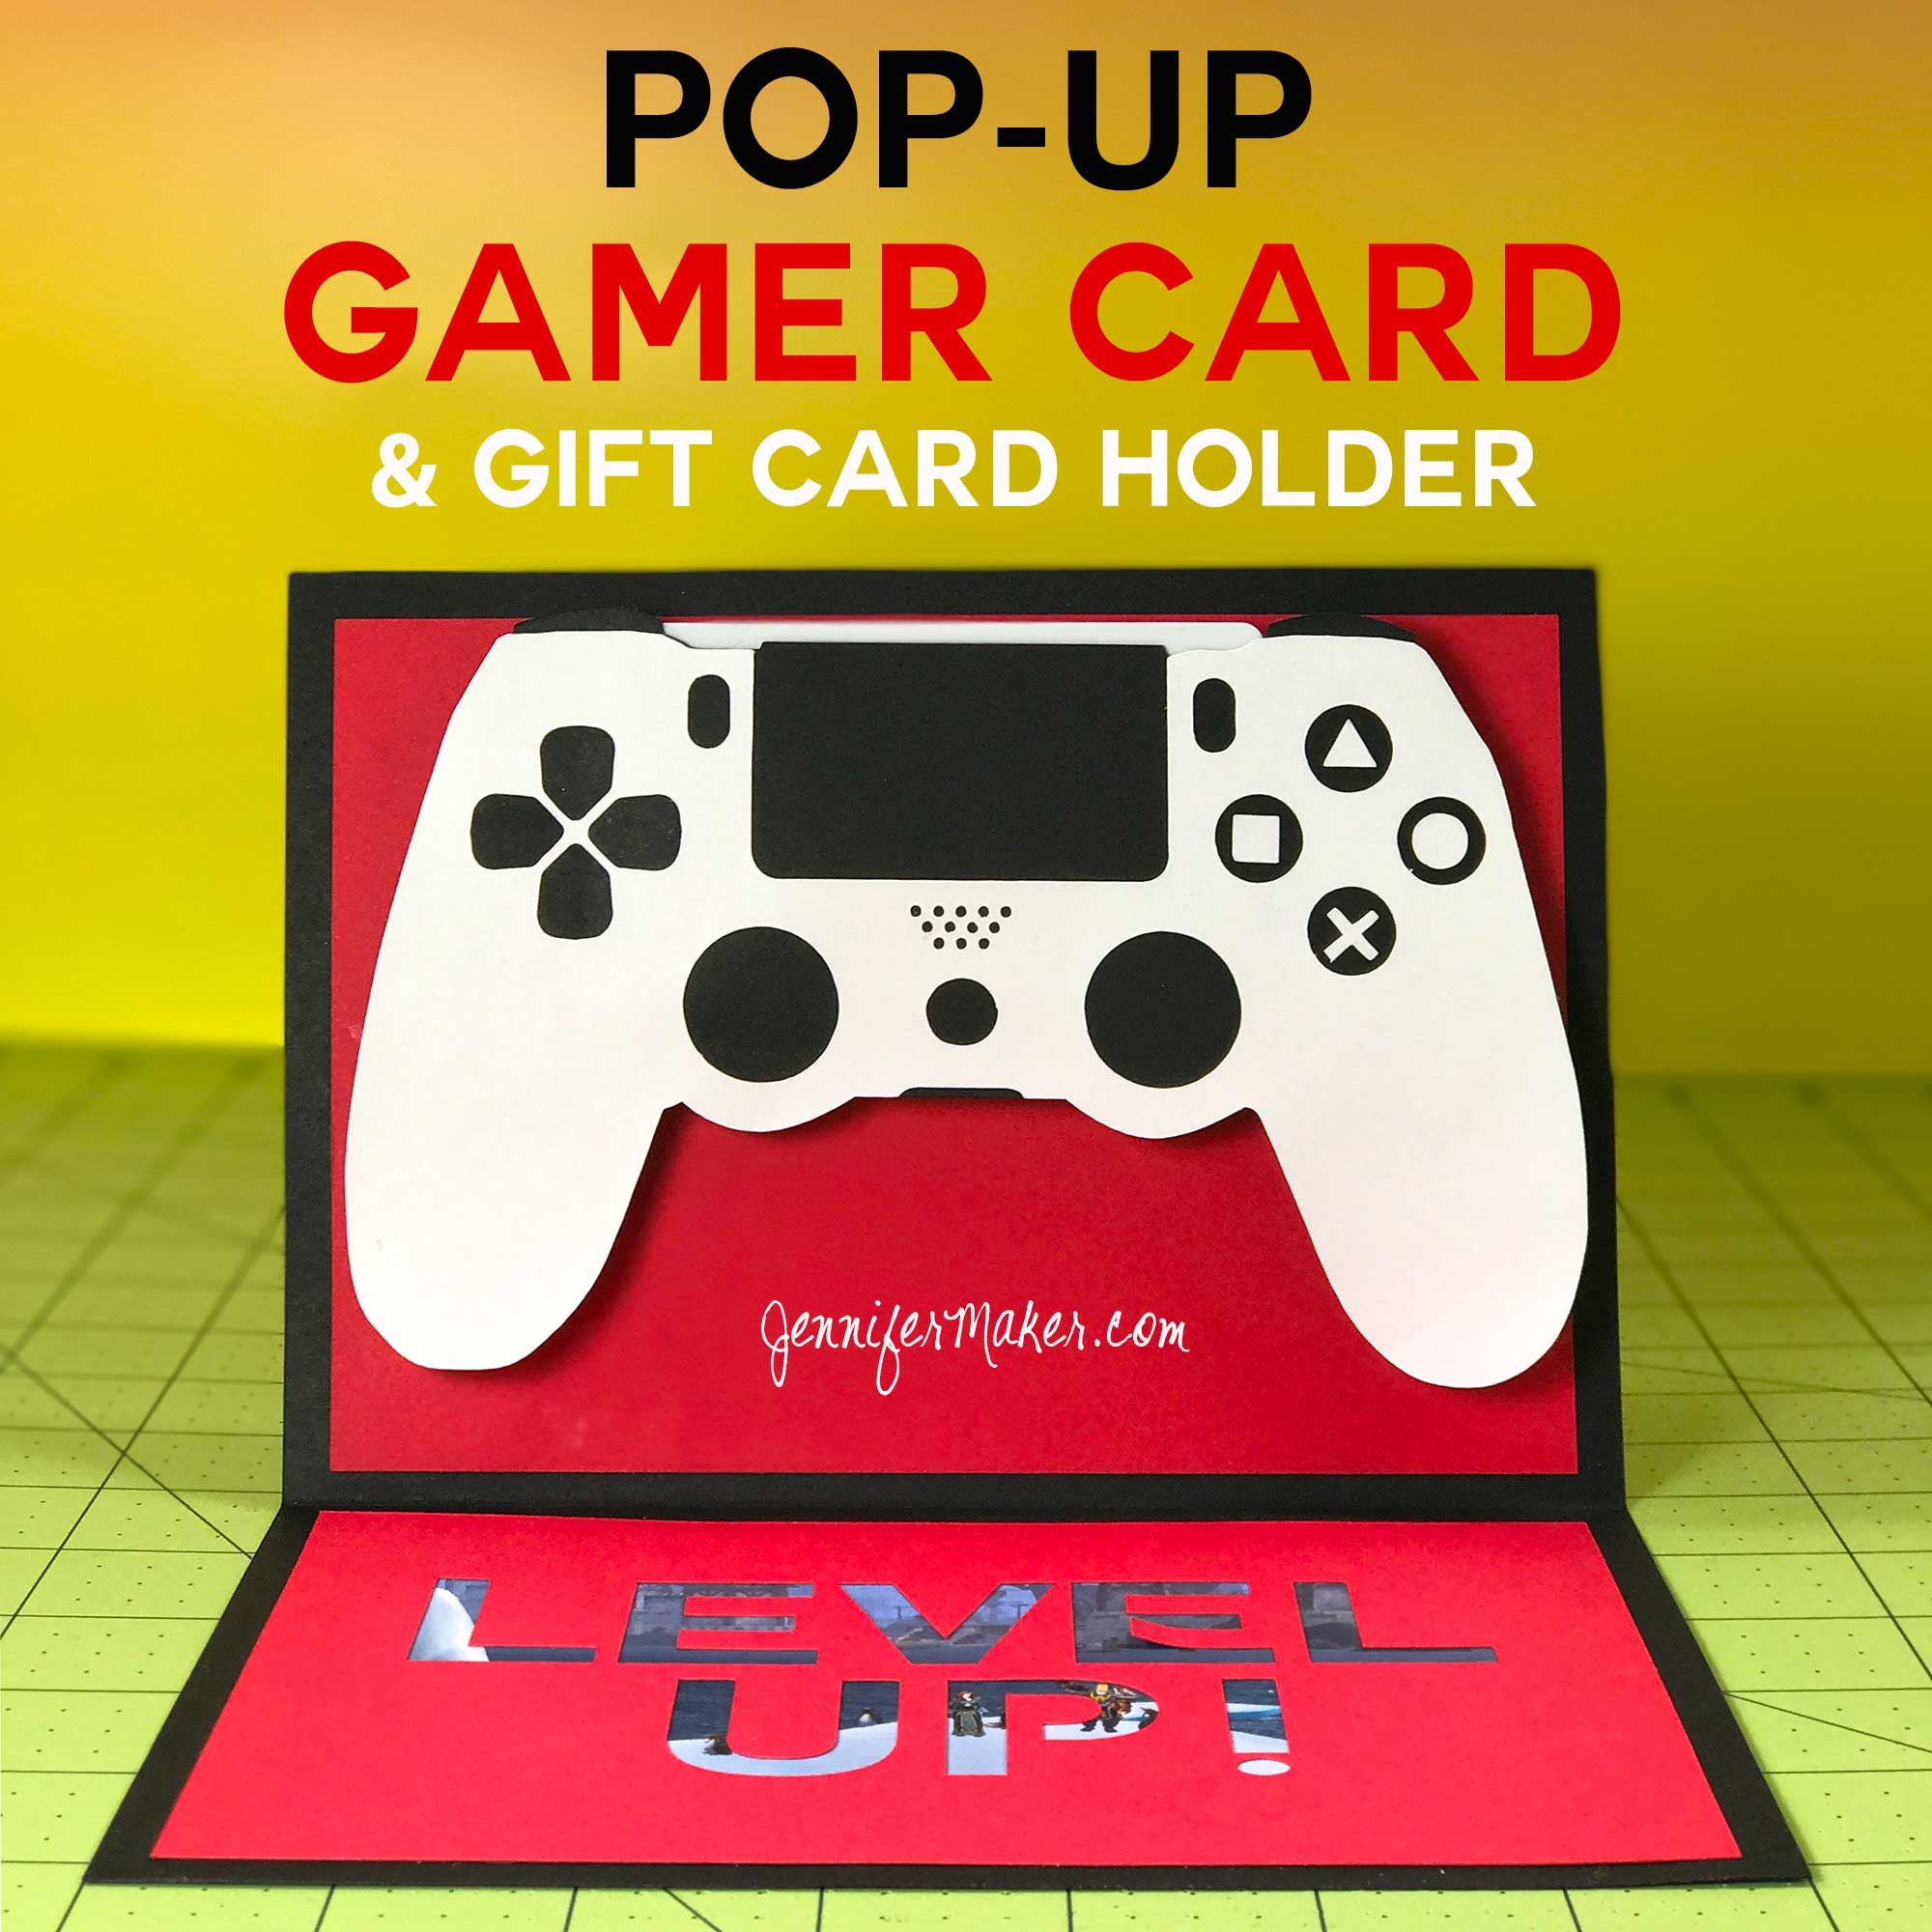 Table Paper Holder Pop Up Game Controller Card Amp Gift Card Holder Jennifer